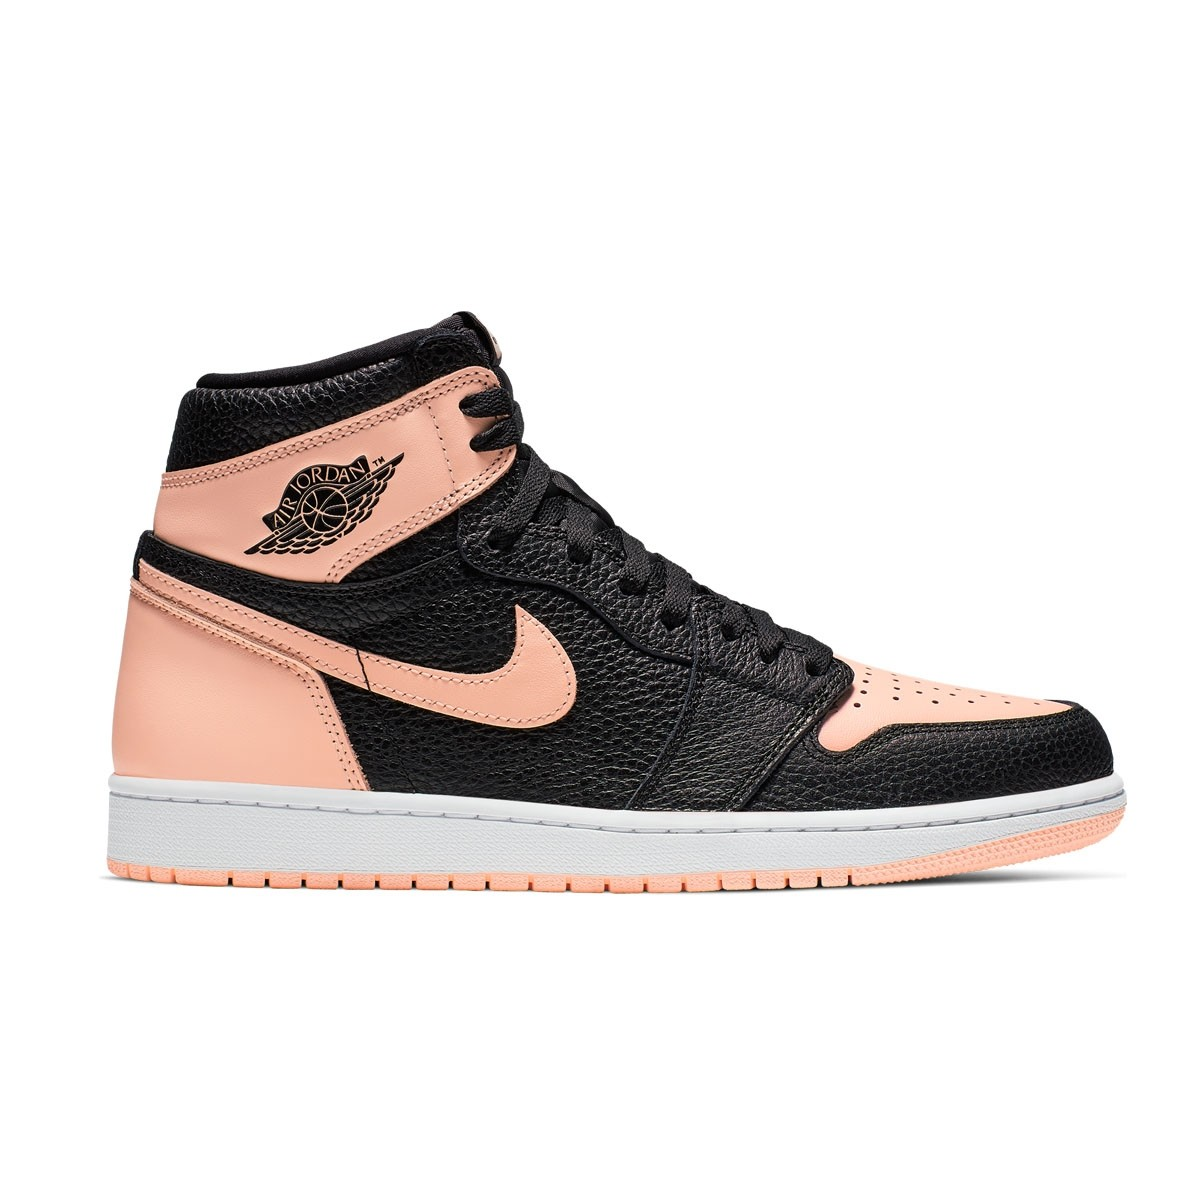 new concept c0a58 86ad5 Air Jordan 1 Retro High OG 'Crimson Tint'